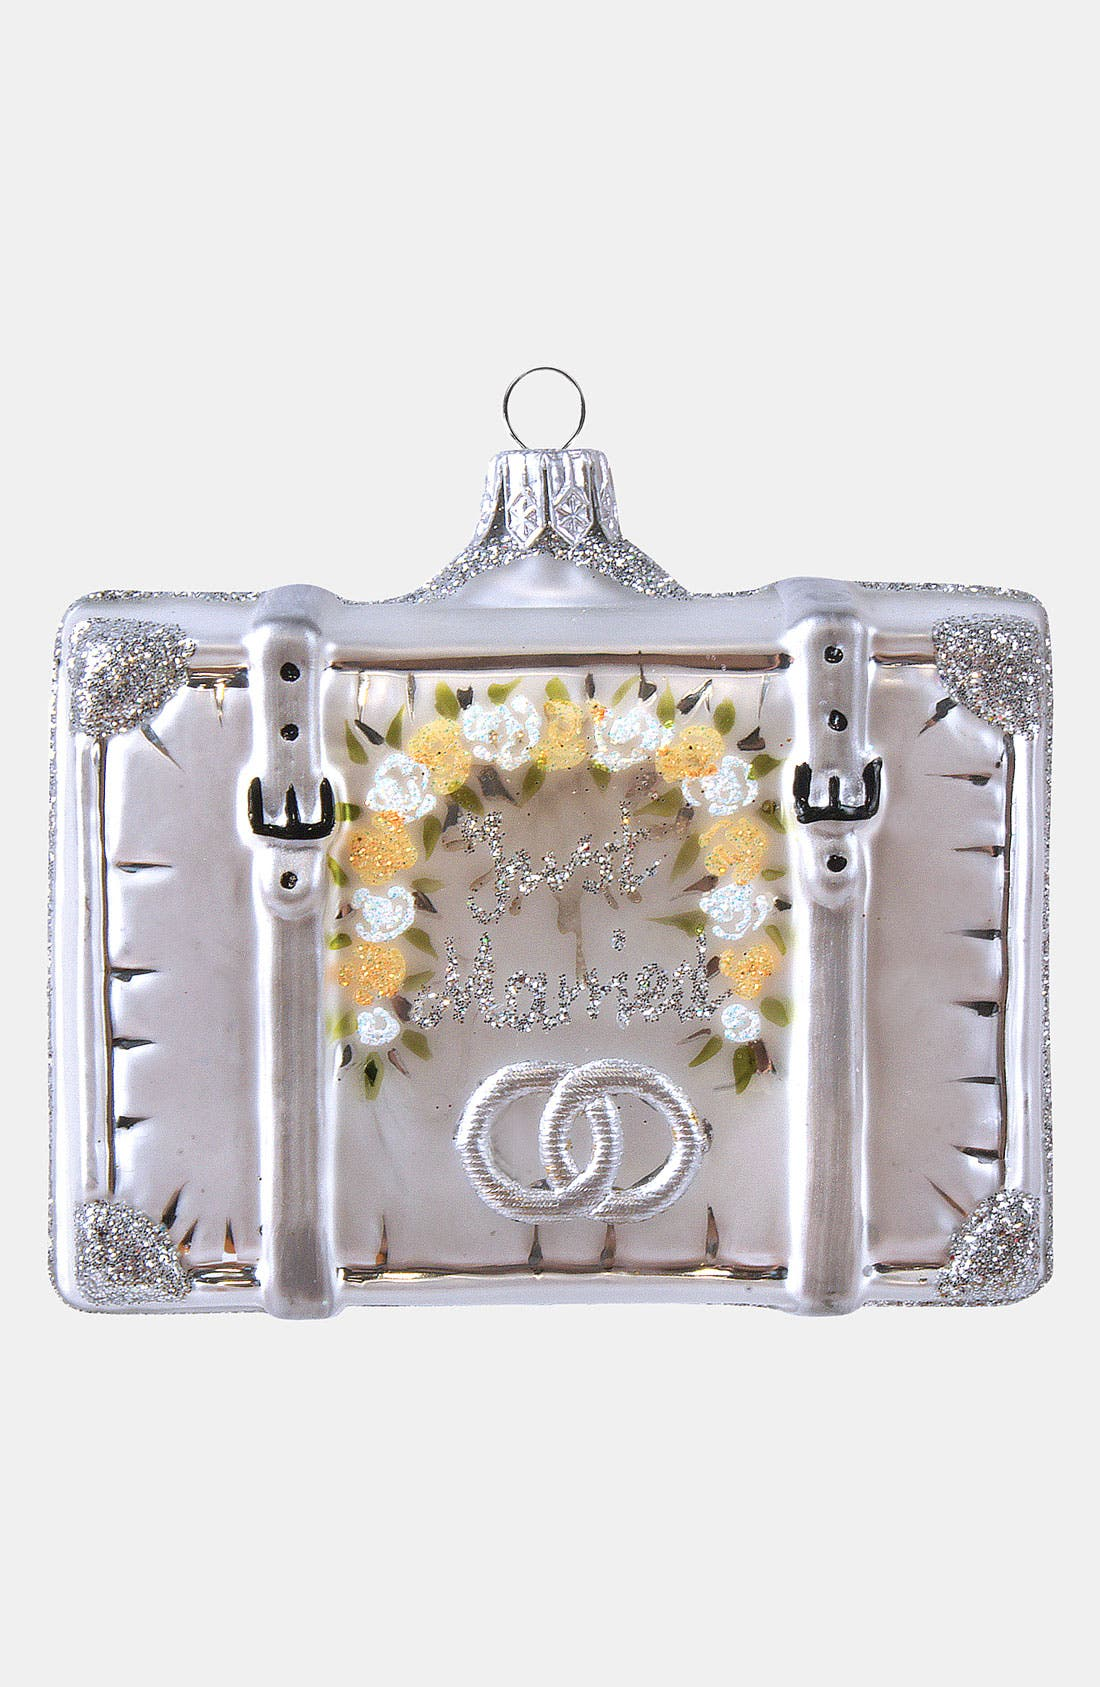 Alternate Image 1 Selected - Nordstrom at Home 'Married 2012' Glass Suitcase Ornament